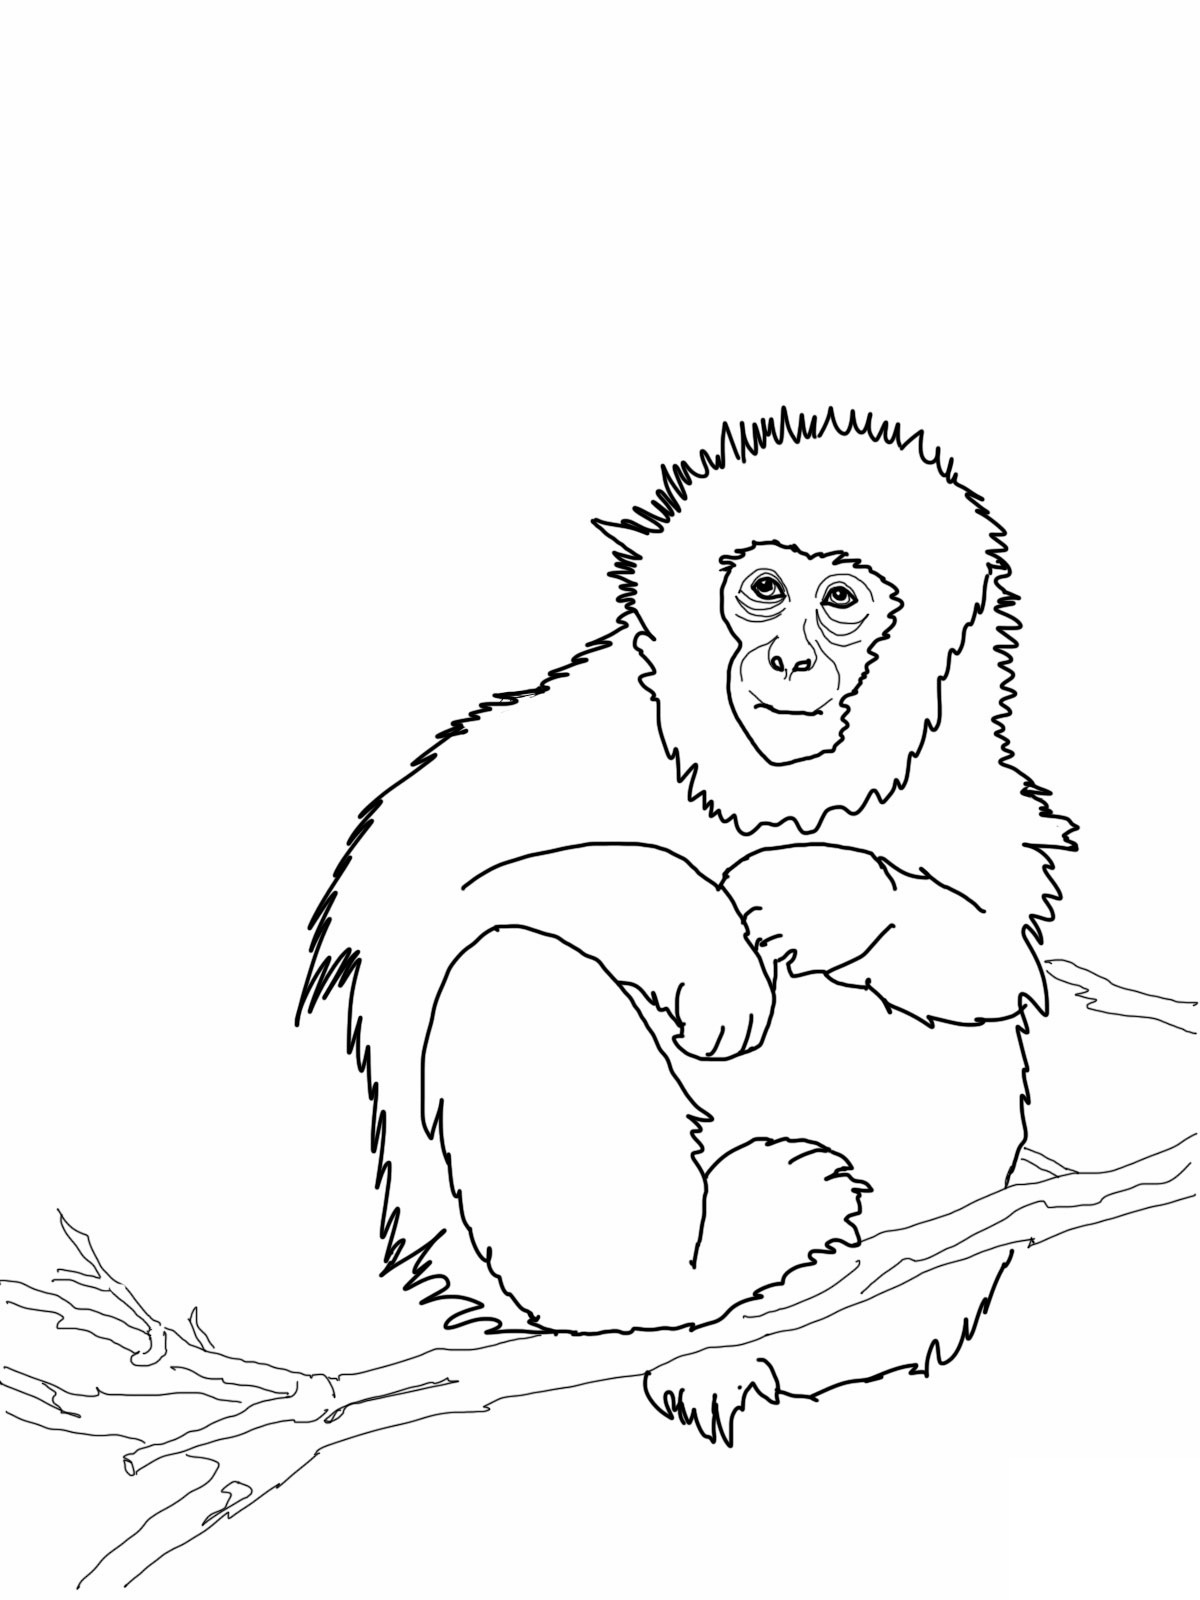 Sock Monkey Coloring Pages  Collection 8c - Free Download